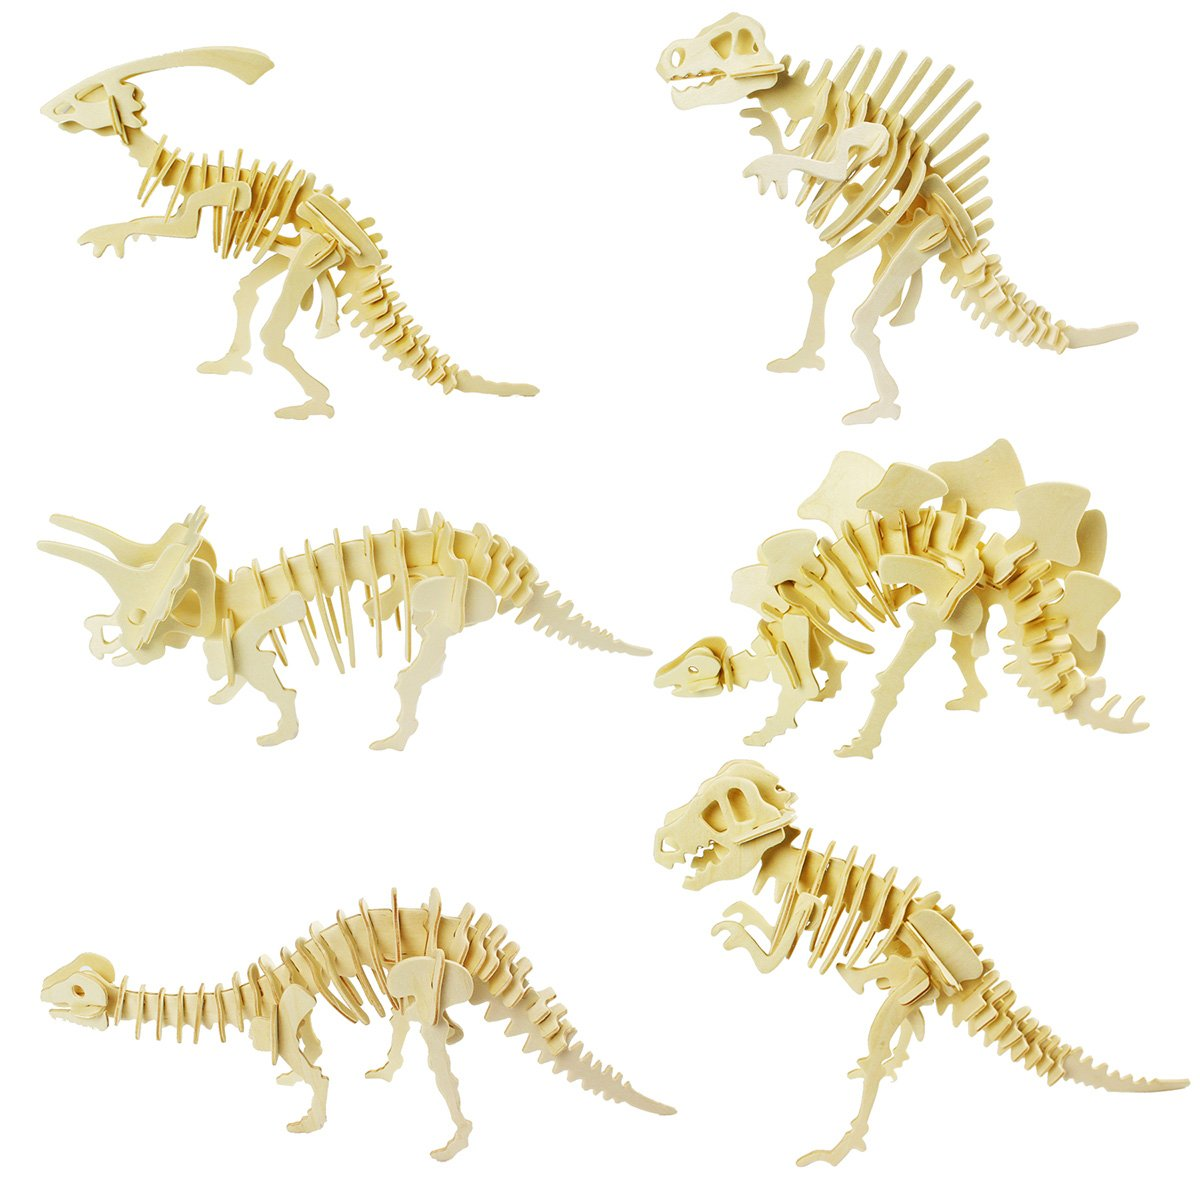 calary 3D Wooden Puzzle Simulation Animal Dinosaur Assembly DIY Model Toy for Kids and Adults,Set of 6 by calary